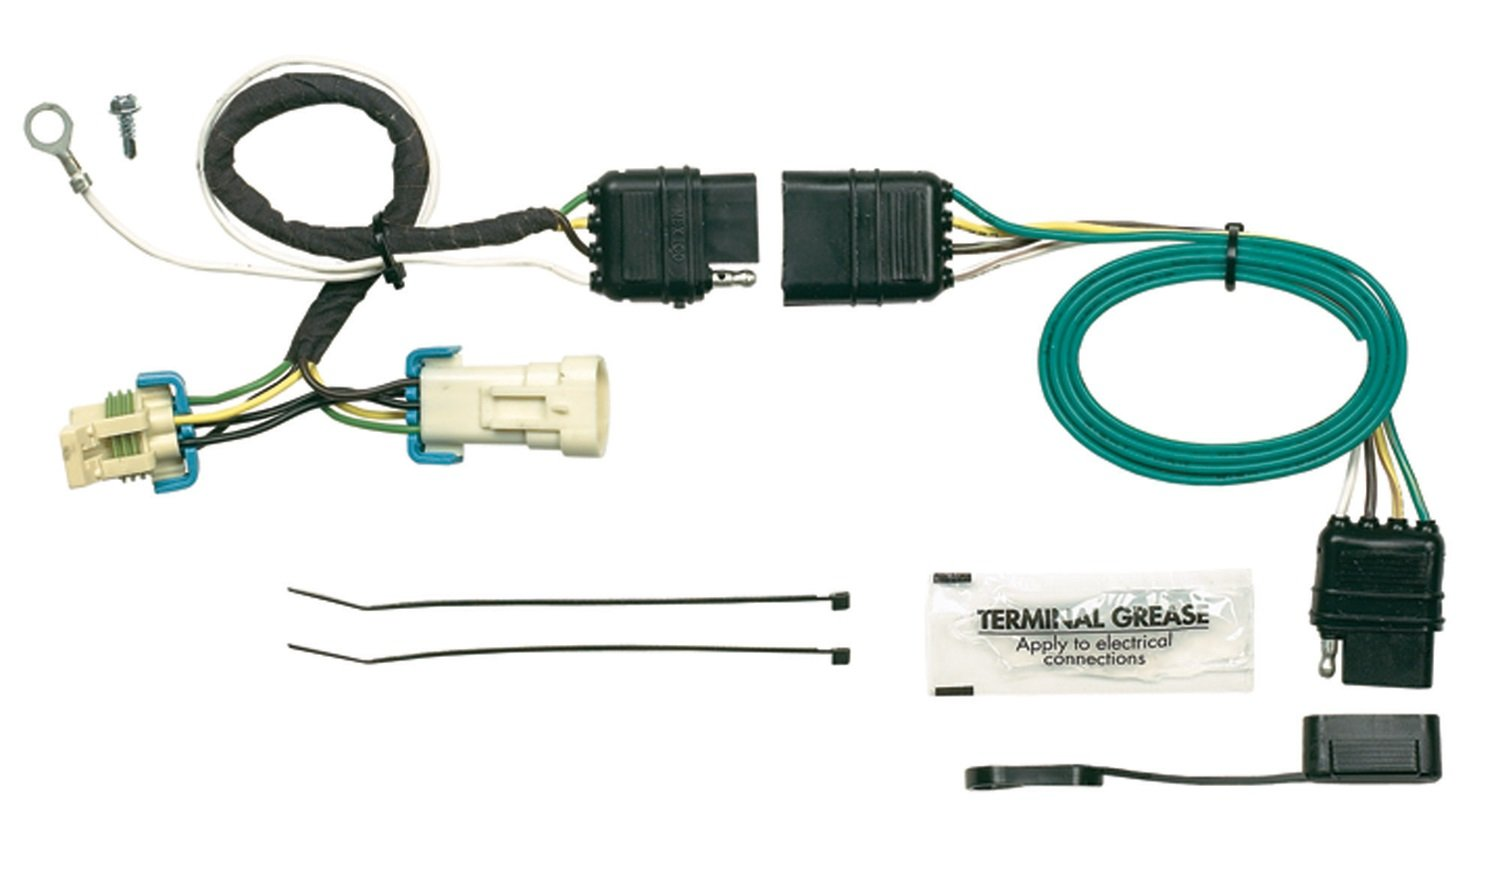 618X6OJbTkL._SL1500_ amazon com hopkins 41135 plug in simple vehicle wiring kit 7 Pin Trailer Brake Wiring Diagram for Trailer at panicattacktreatment.co